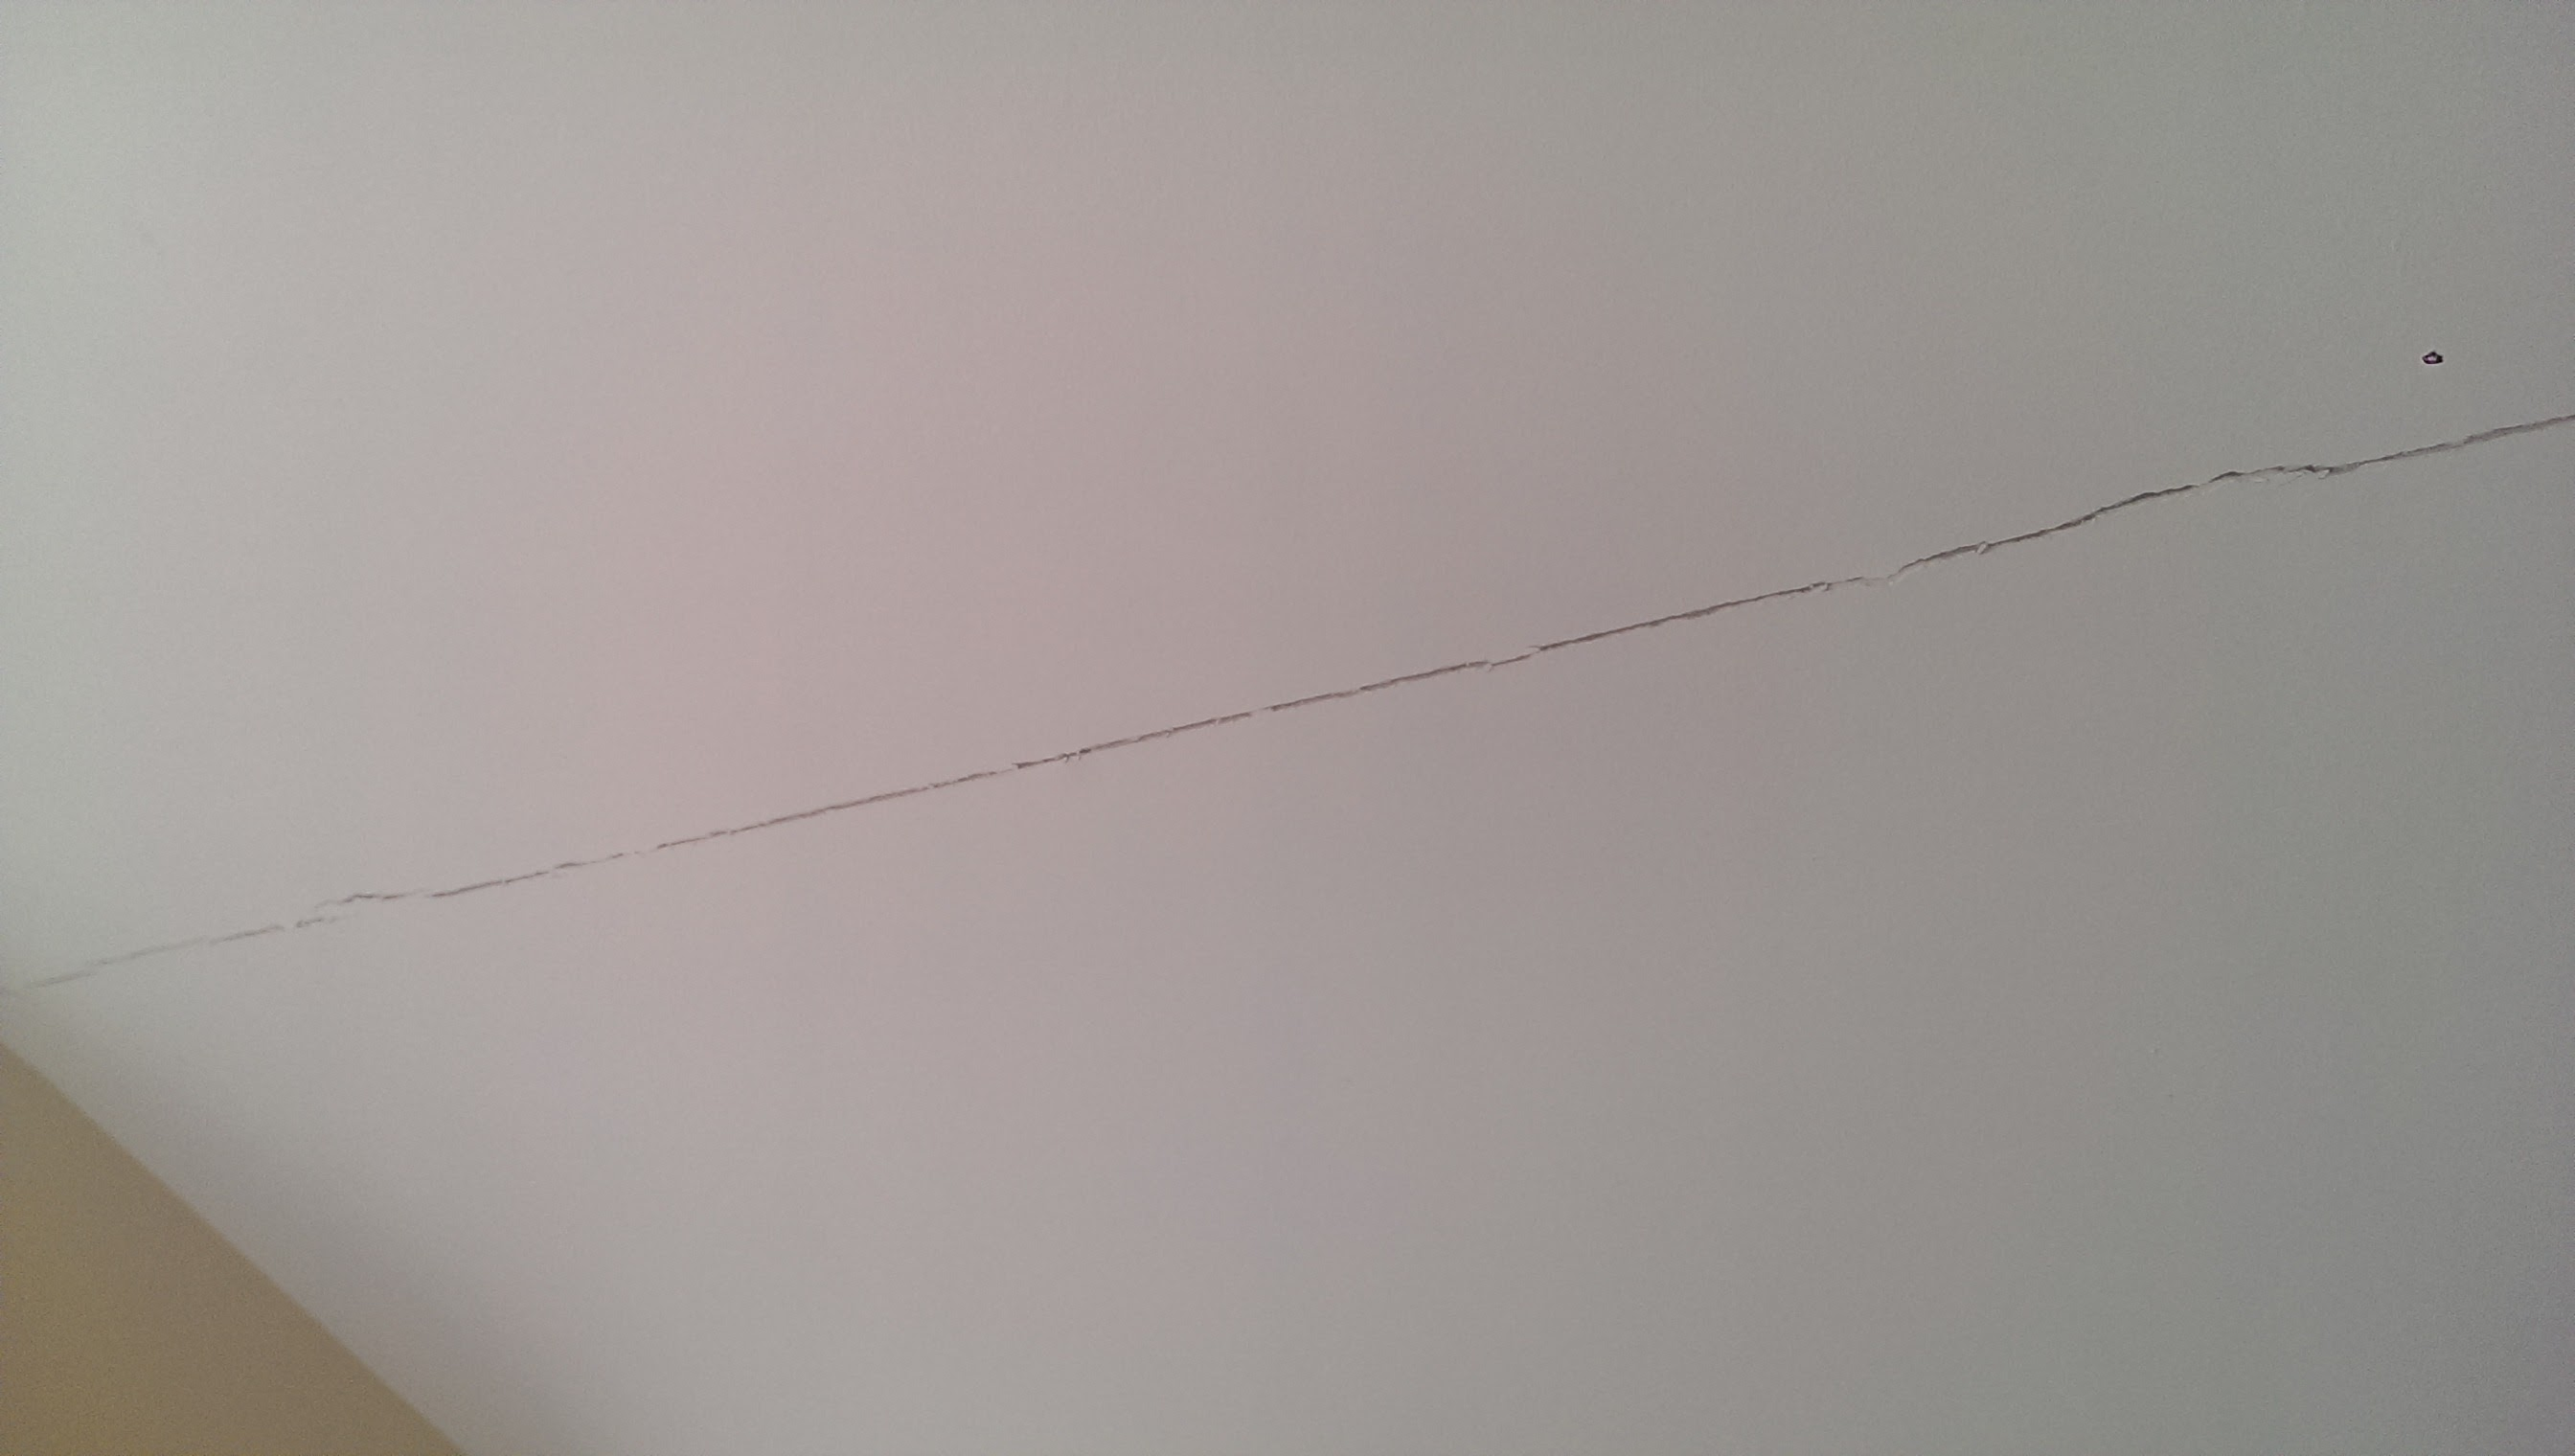 Cracks in my ceiling and wall